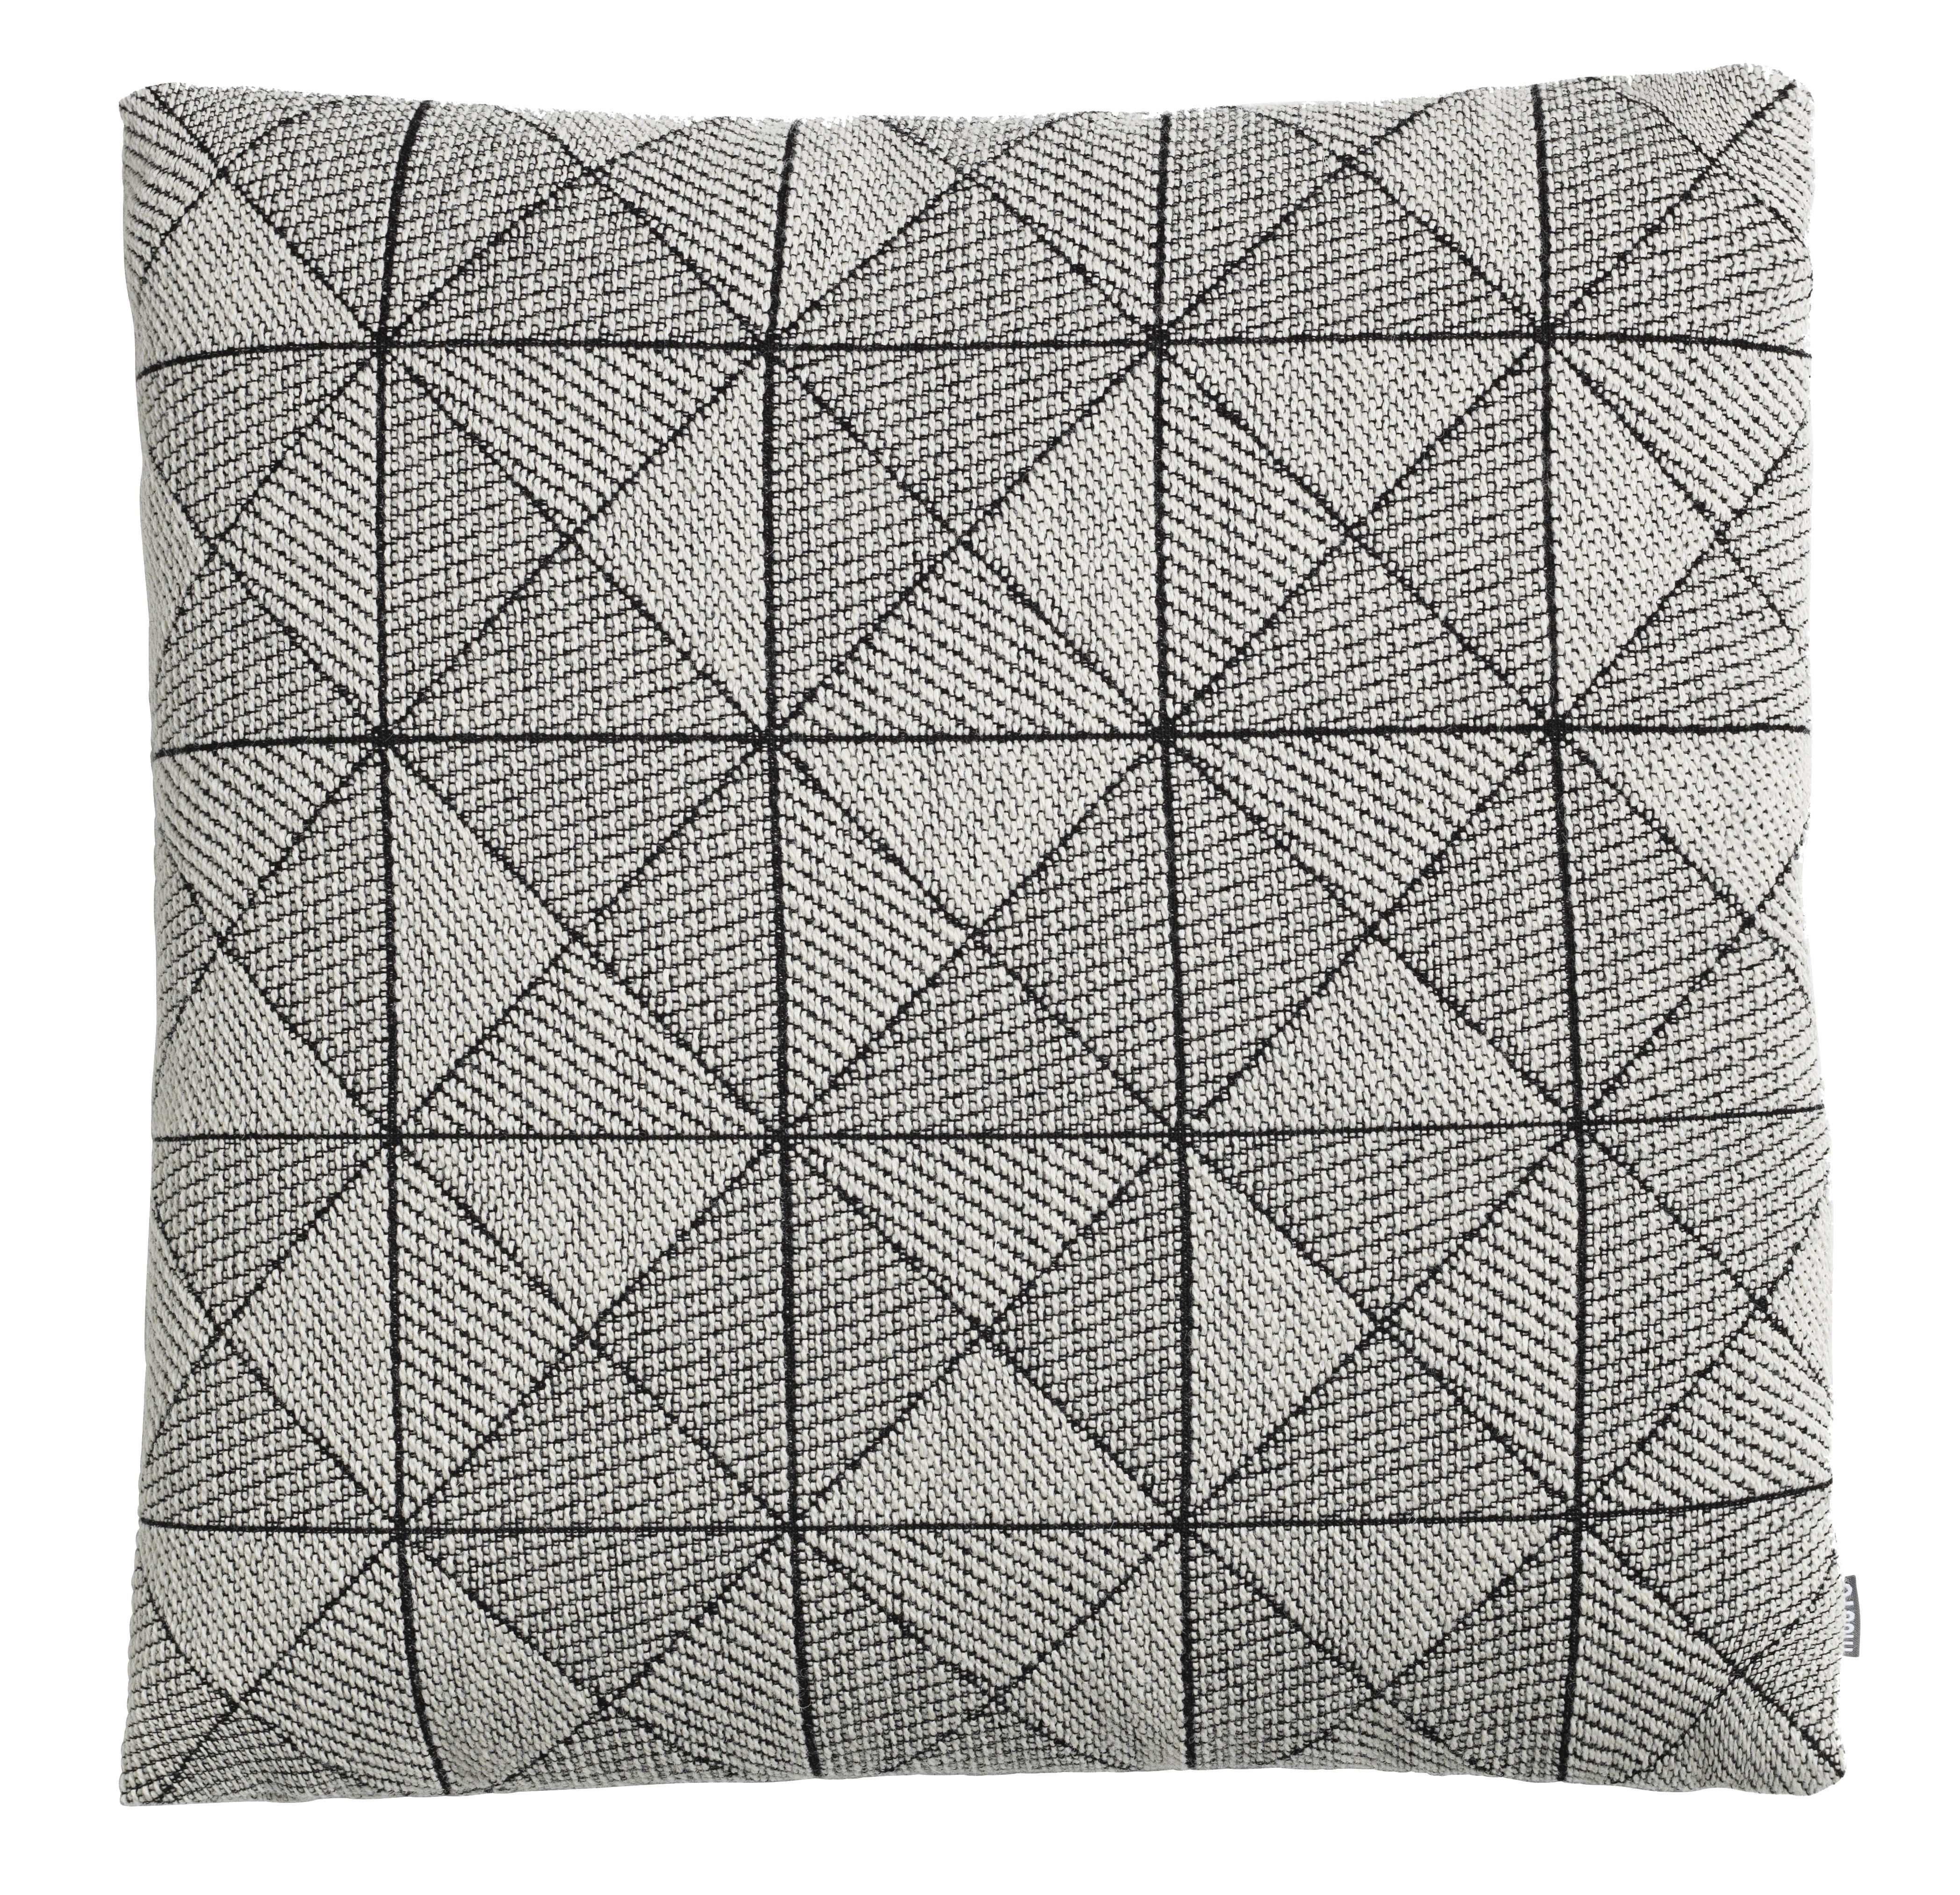 Decoration - Cushions & Poufs - Tile Cushion - 50 x 50 cm by Muuto - White -  Plumes, Polyester fiber, Virgin wool